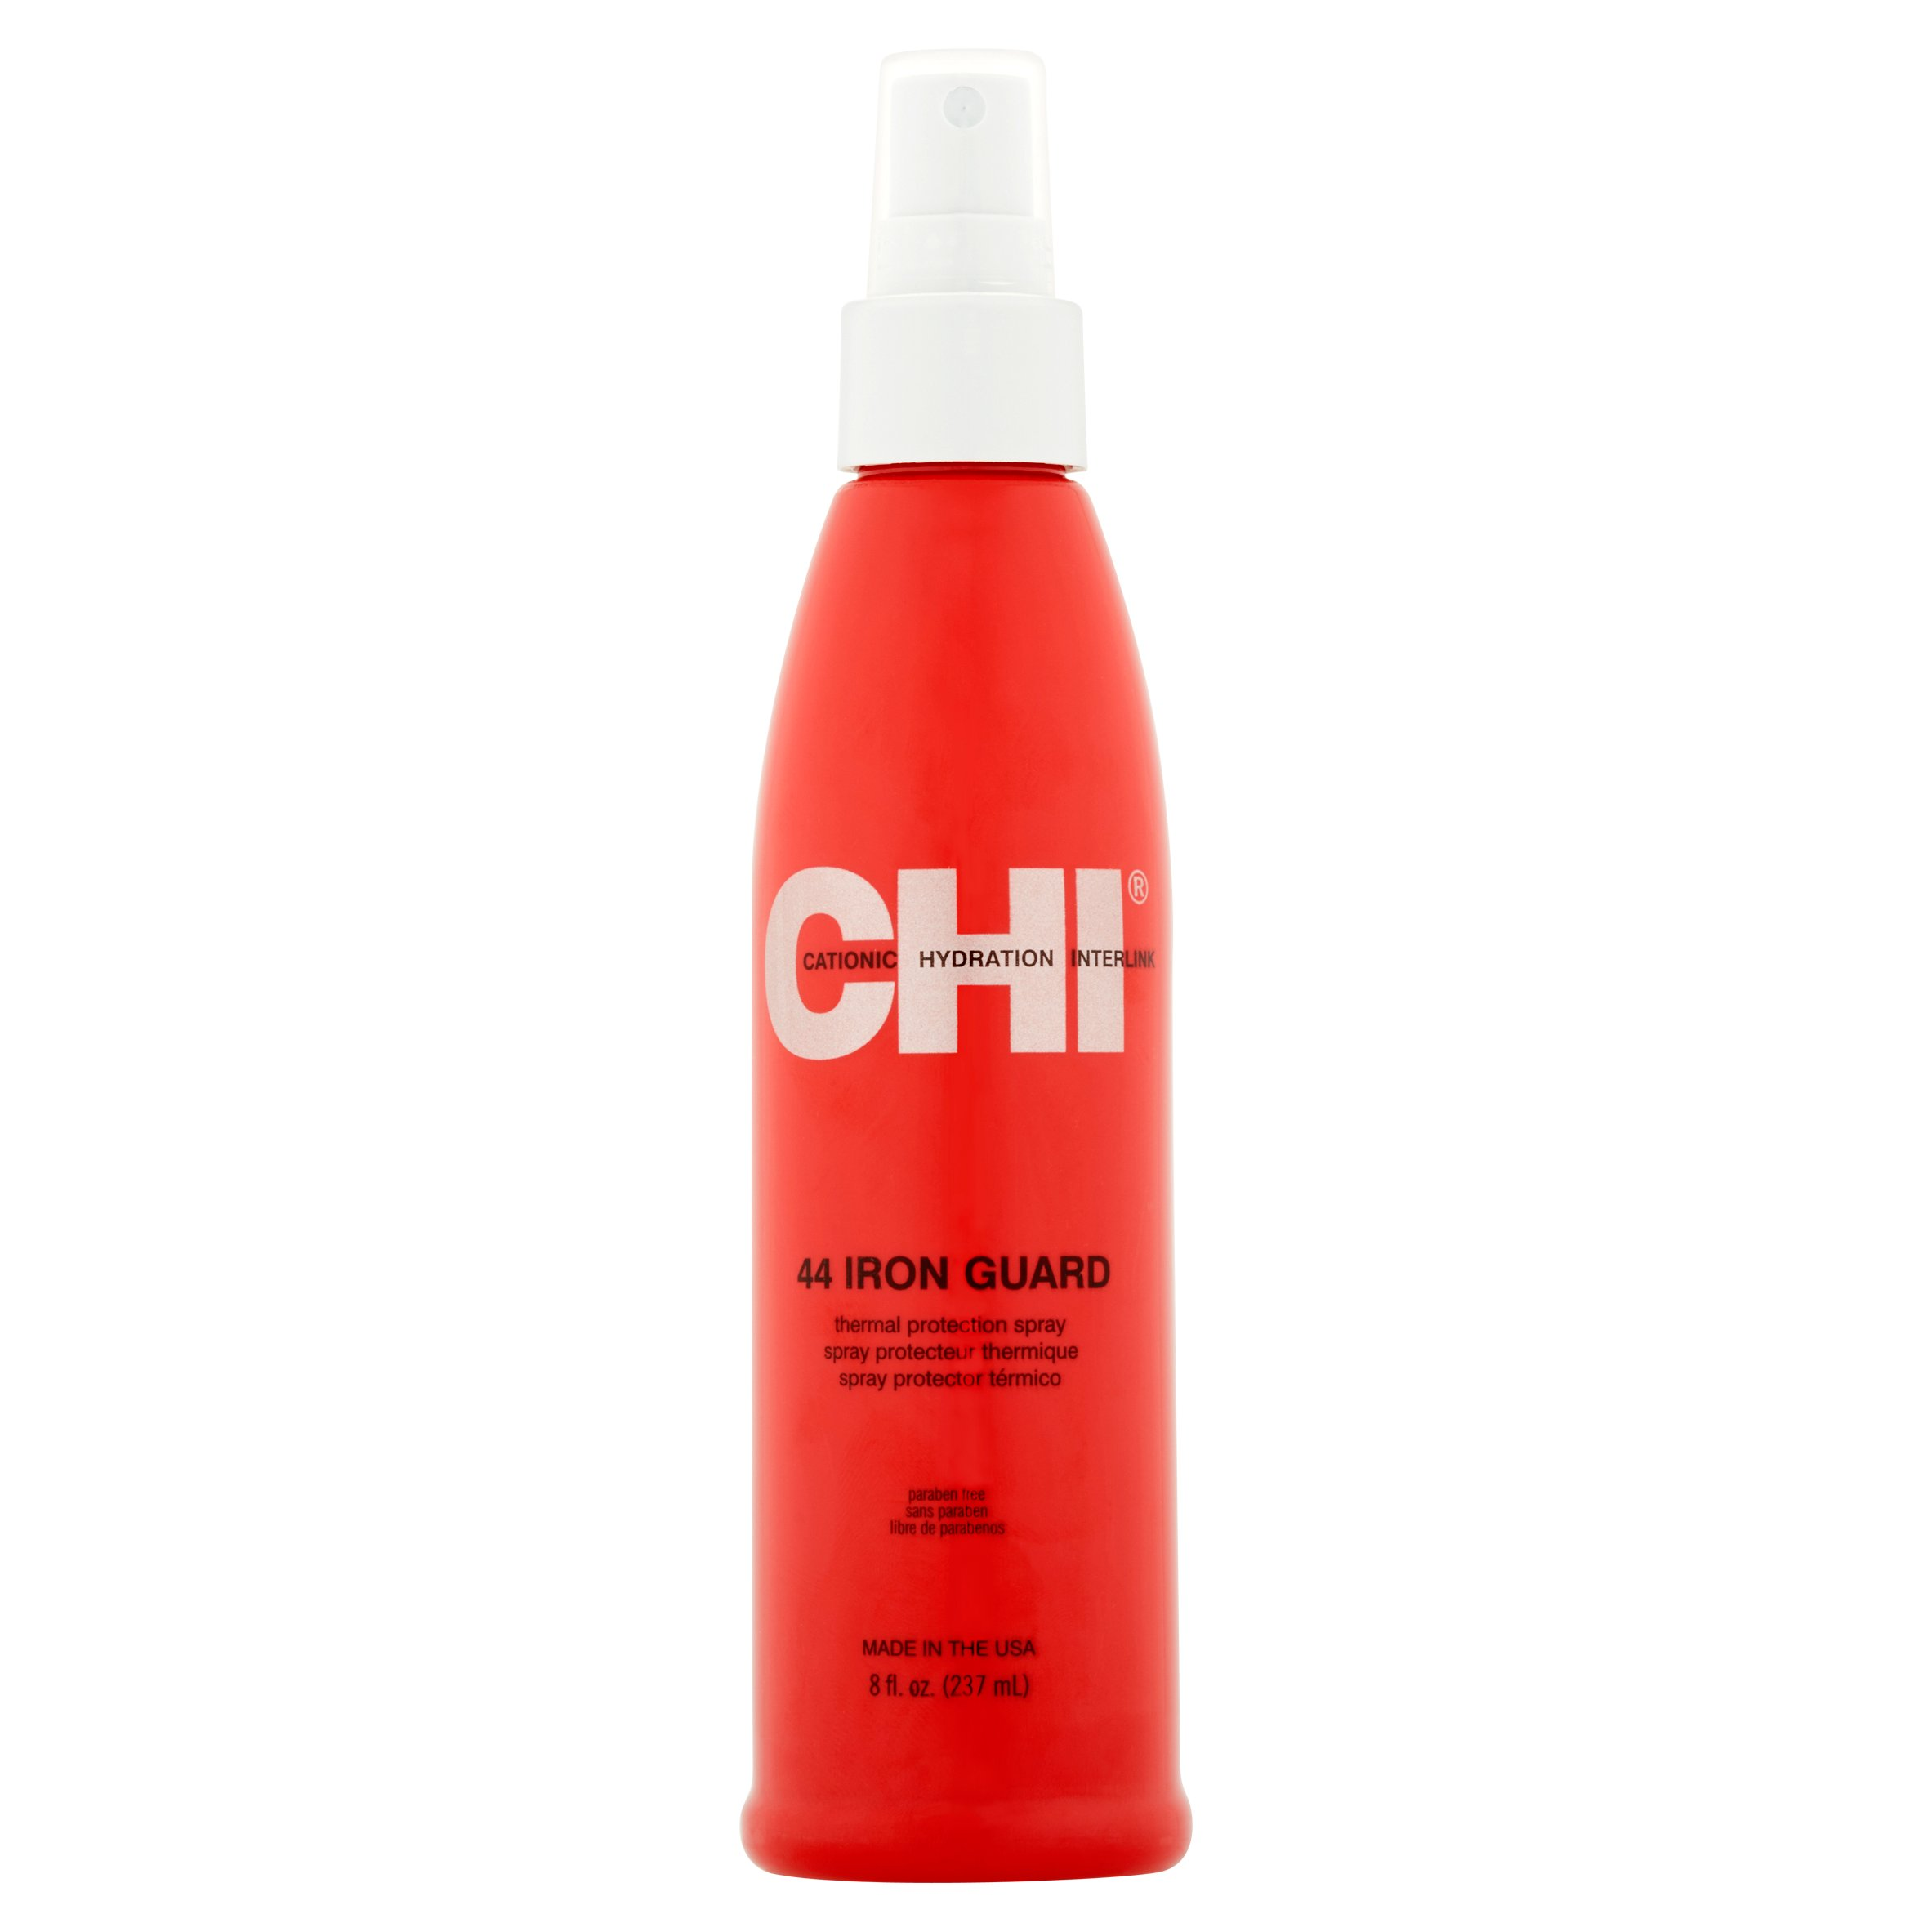 CHI 44 Iron Guard Thermal Protection Spray, 8.5 fl oz